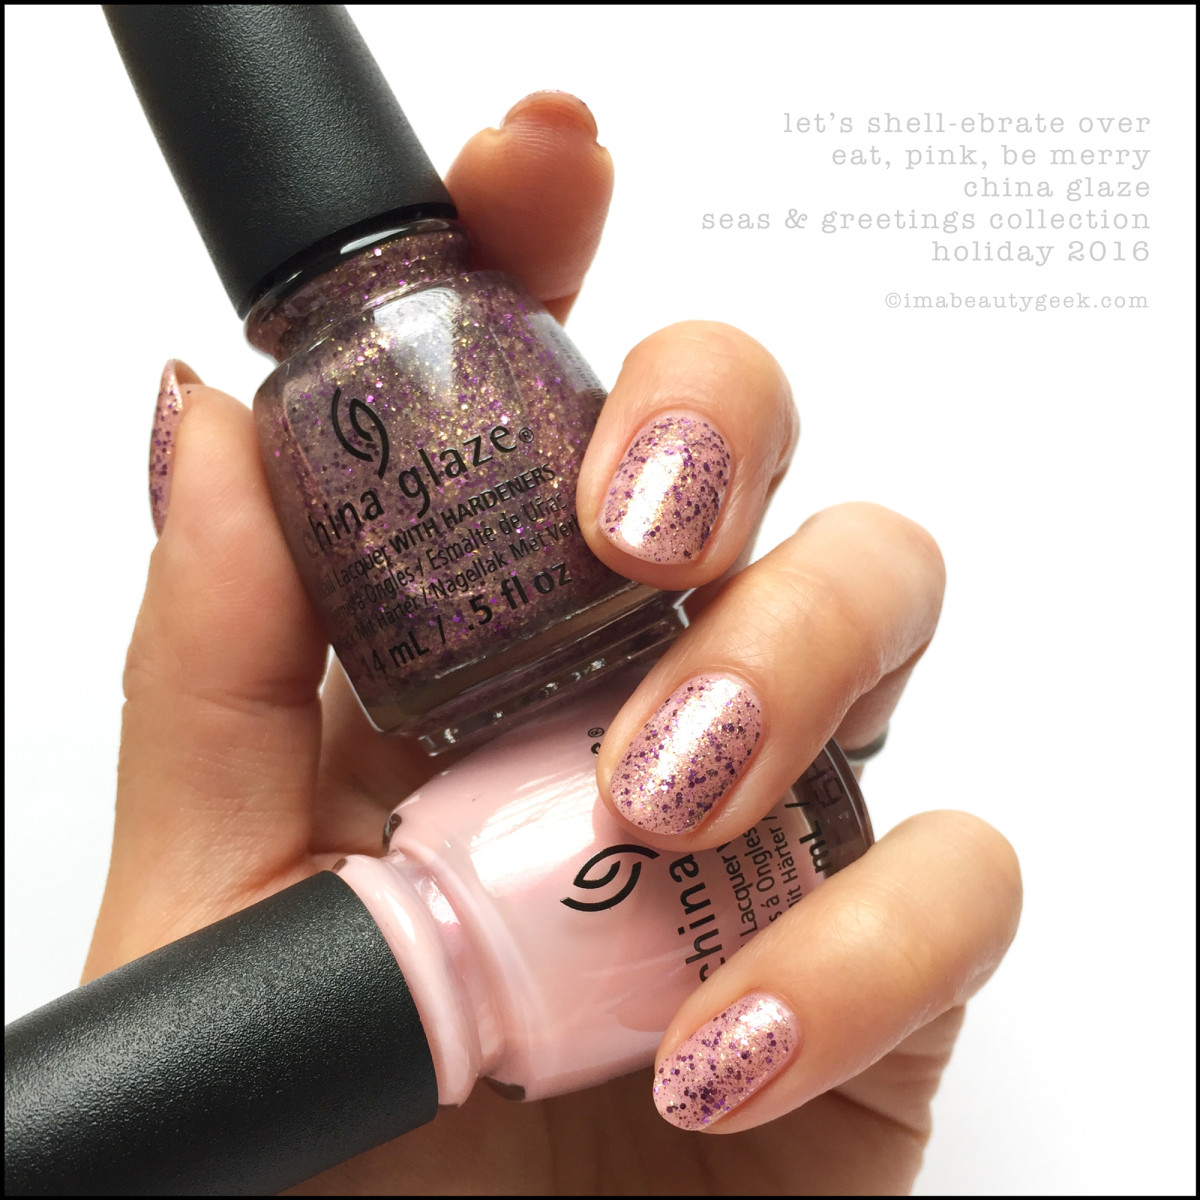 China Glaze Lets Shellebrate over Eat Pink_China Glaze Seas Greetings Holiday 2016 Swatches Review